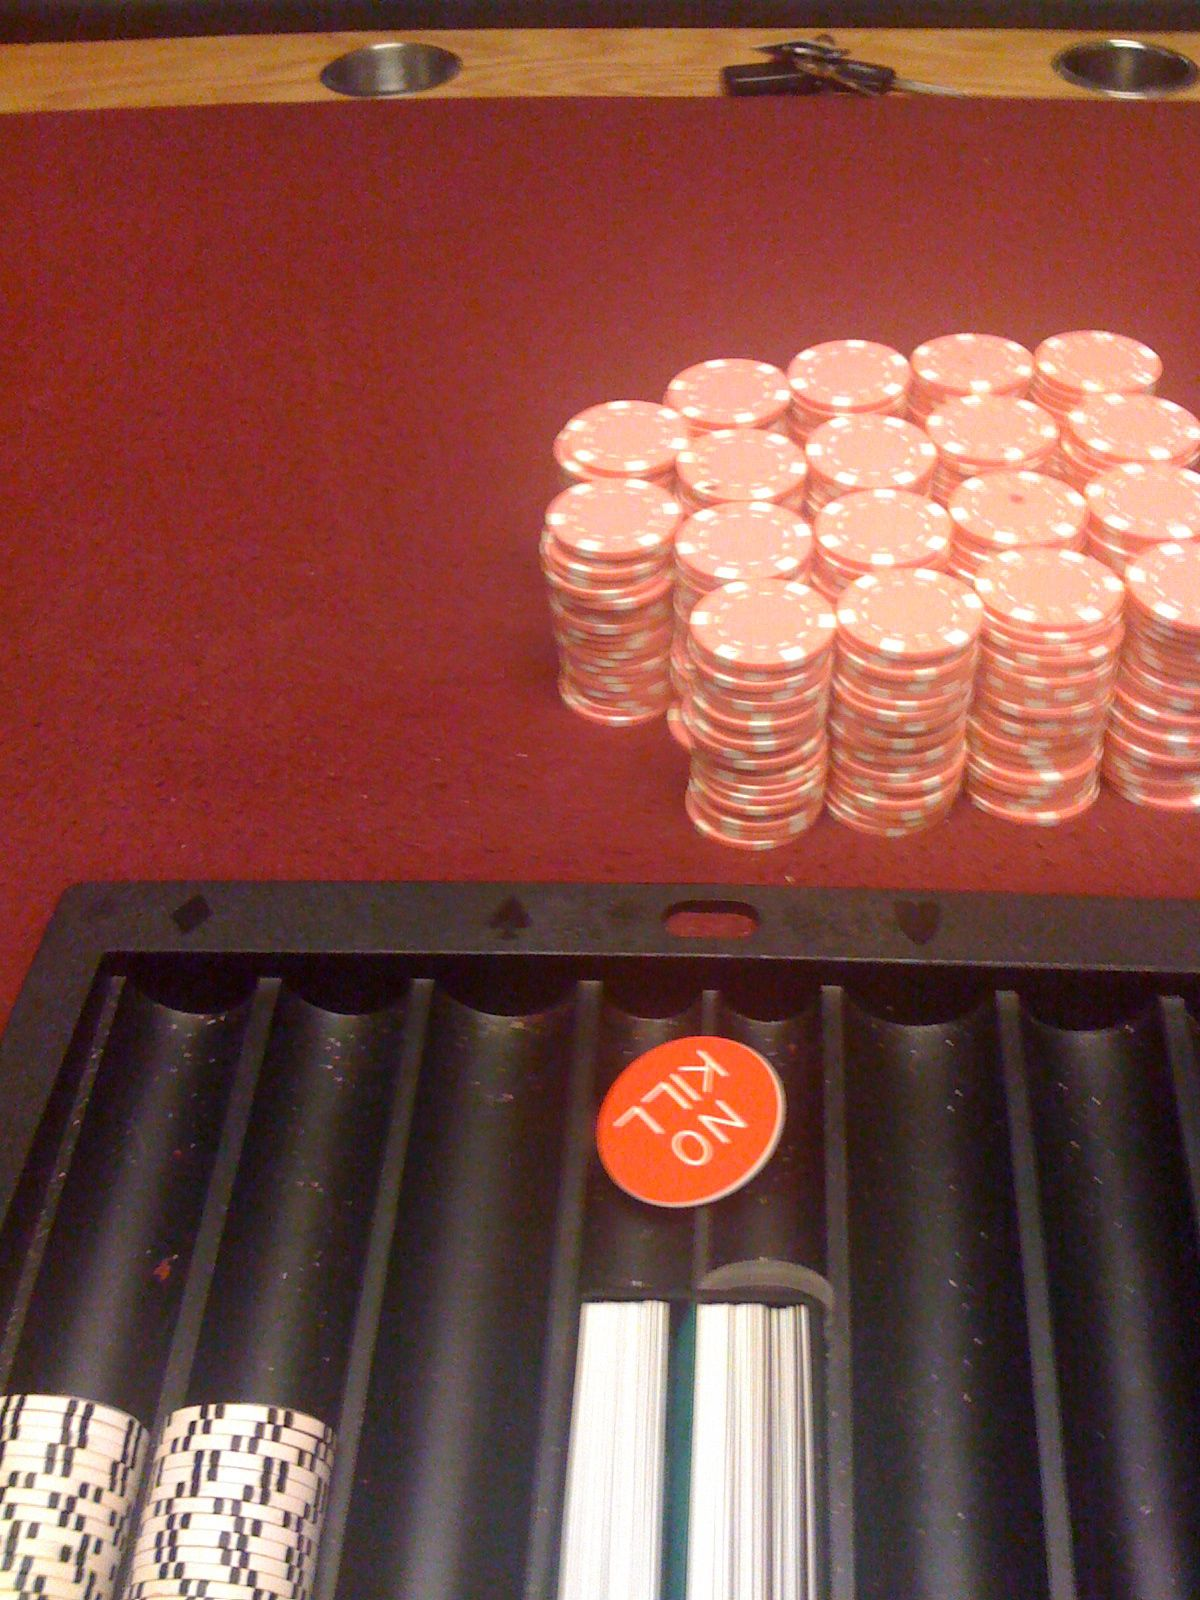 Dealing The Pink Chip Game